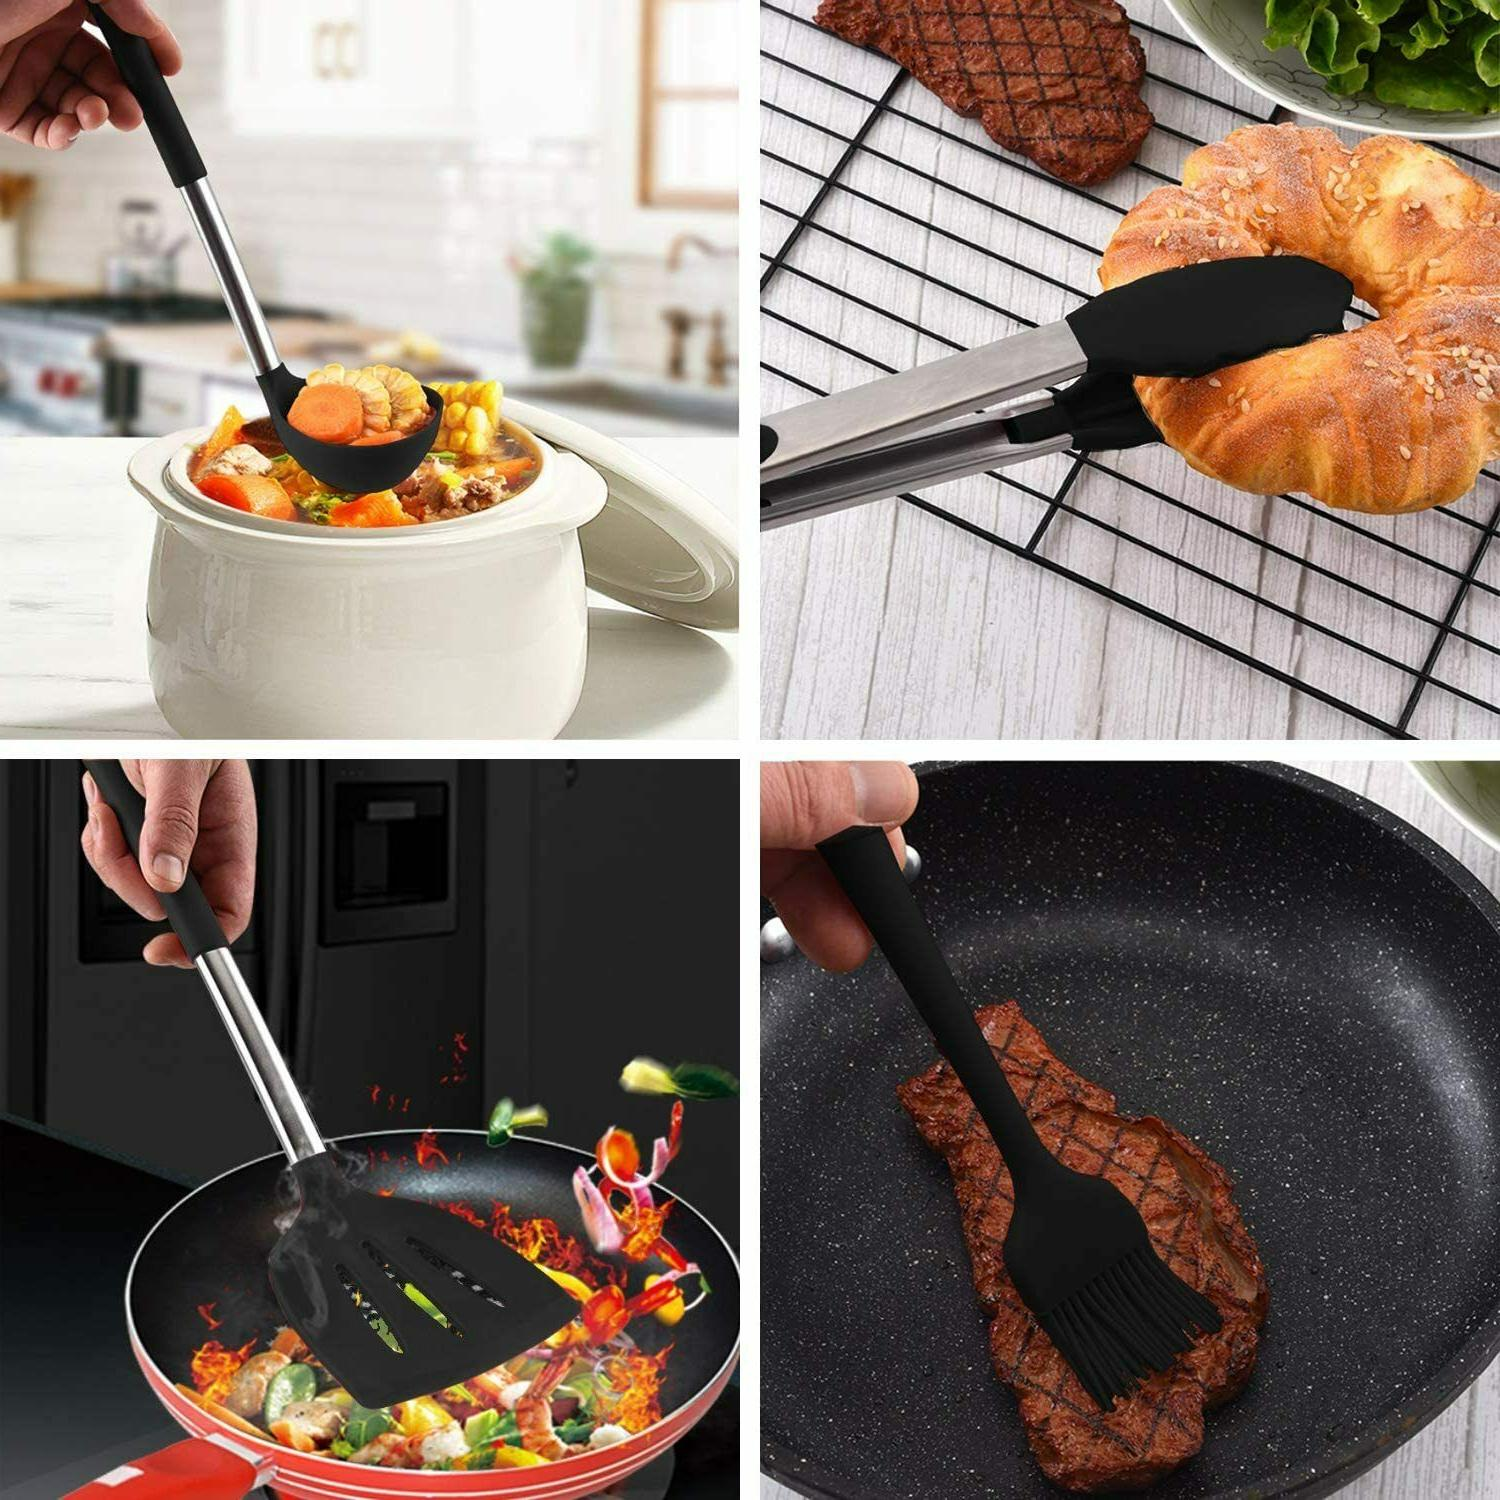 36PCS Set,Silicone Cooking with